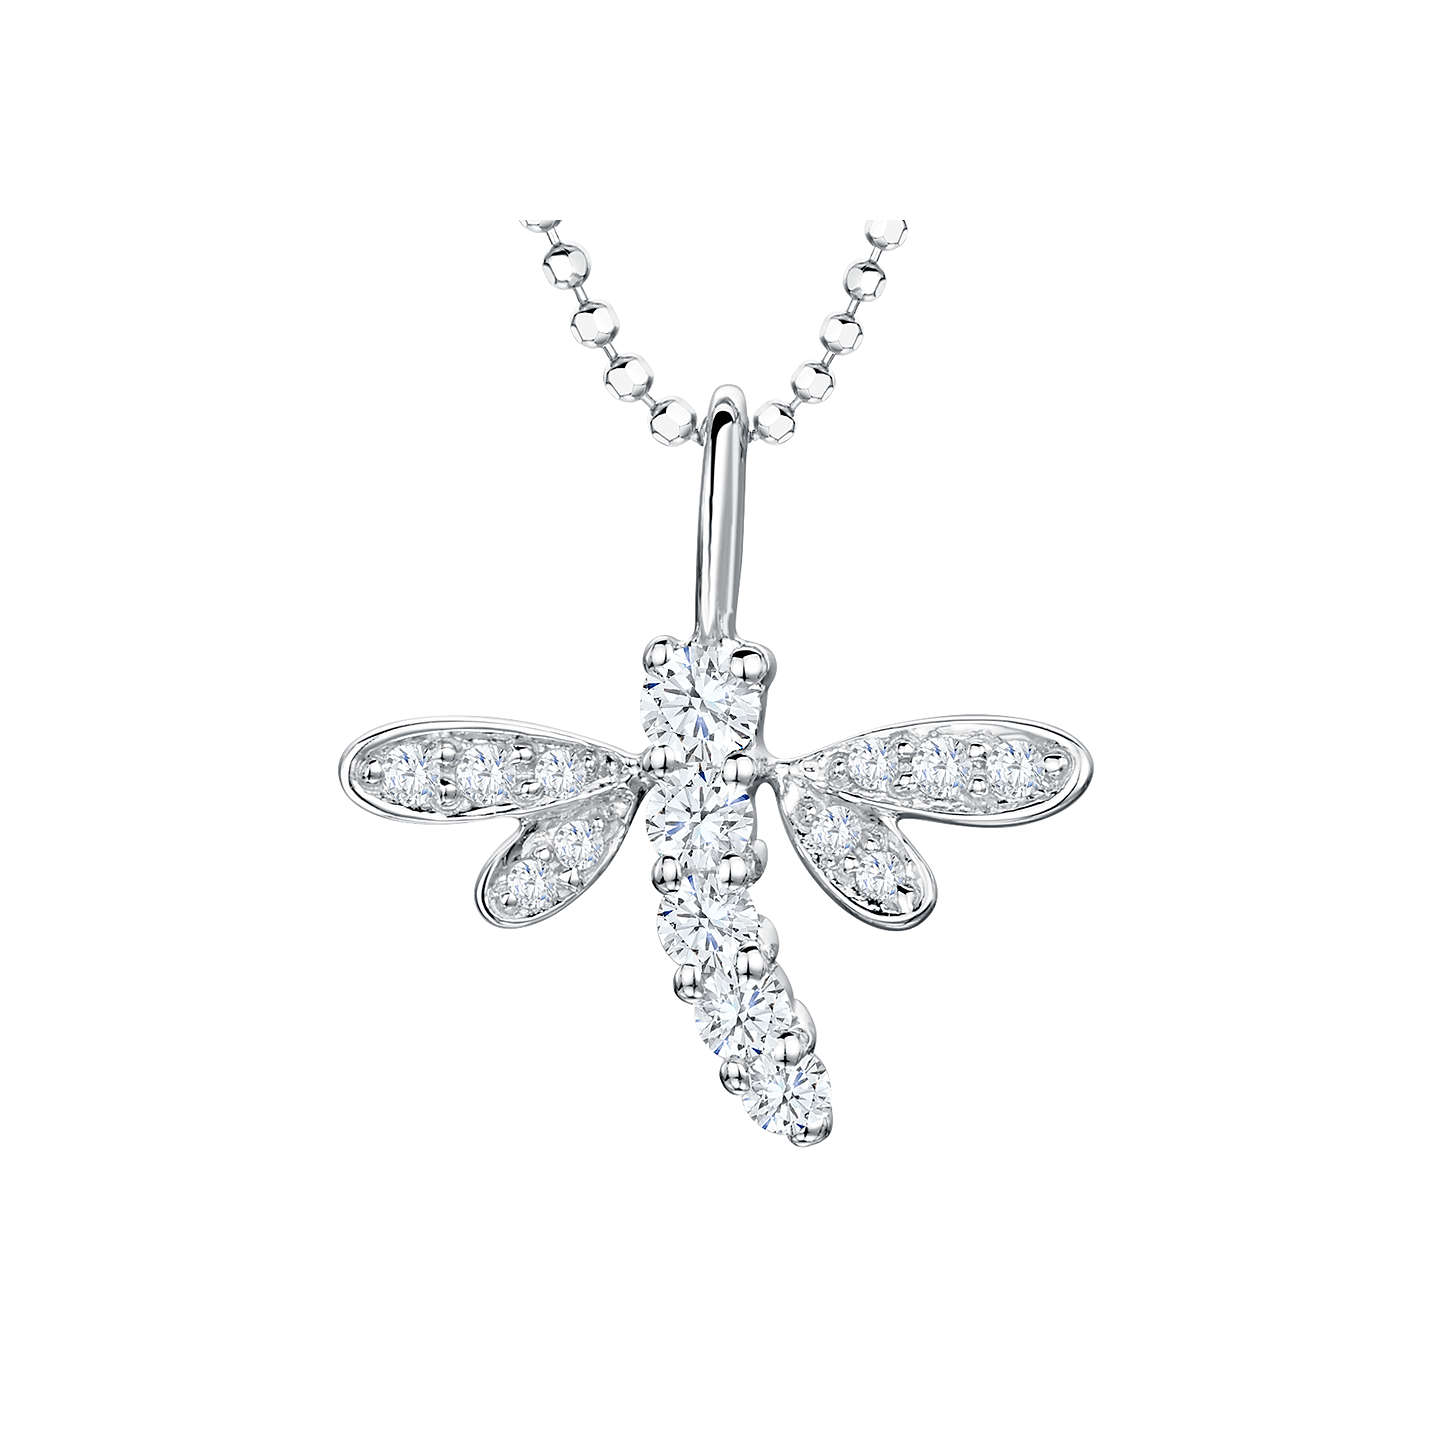 overstock diamonds jewelry gold with today dragonfly pendant sterling rose plated free yellow watches product shipping necklace silver filigree in